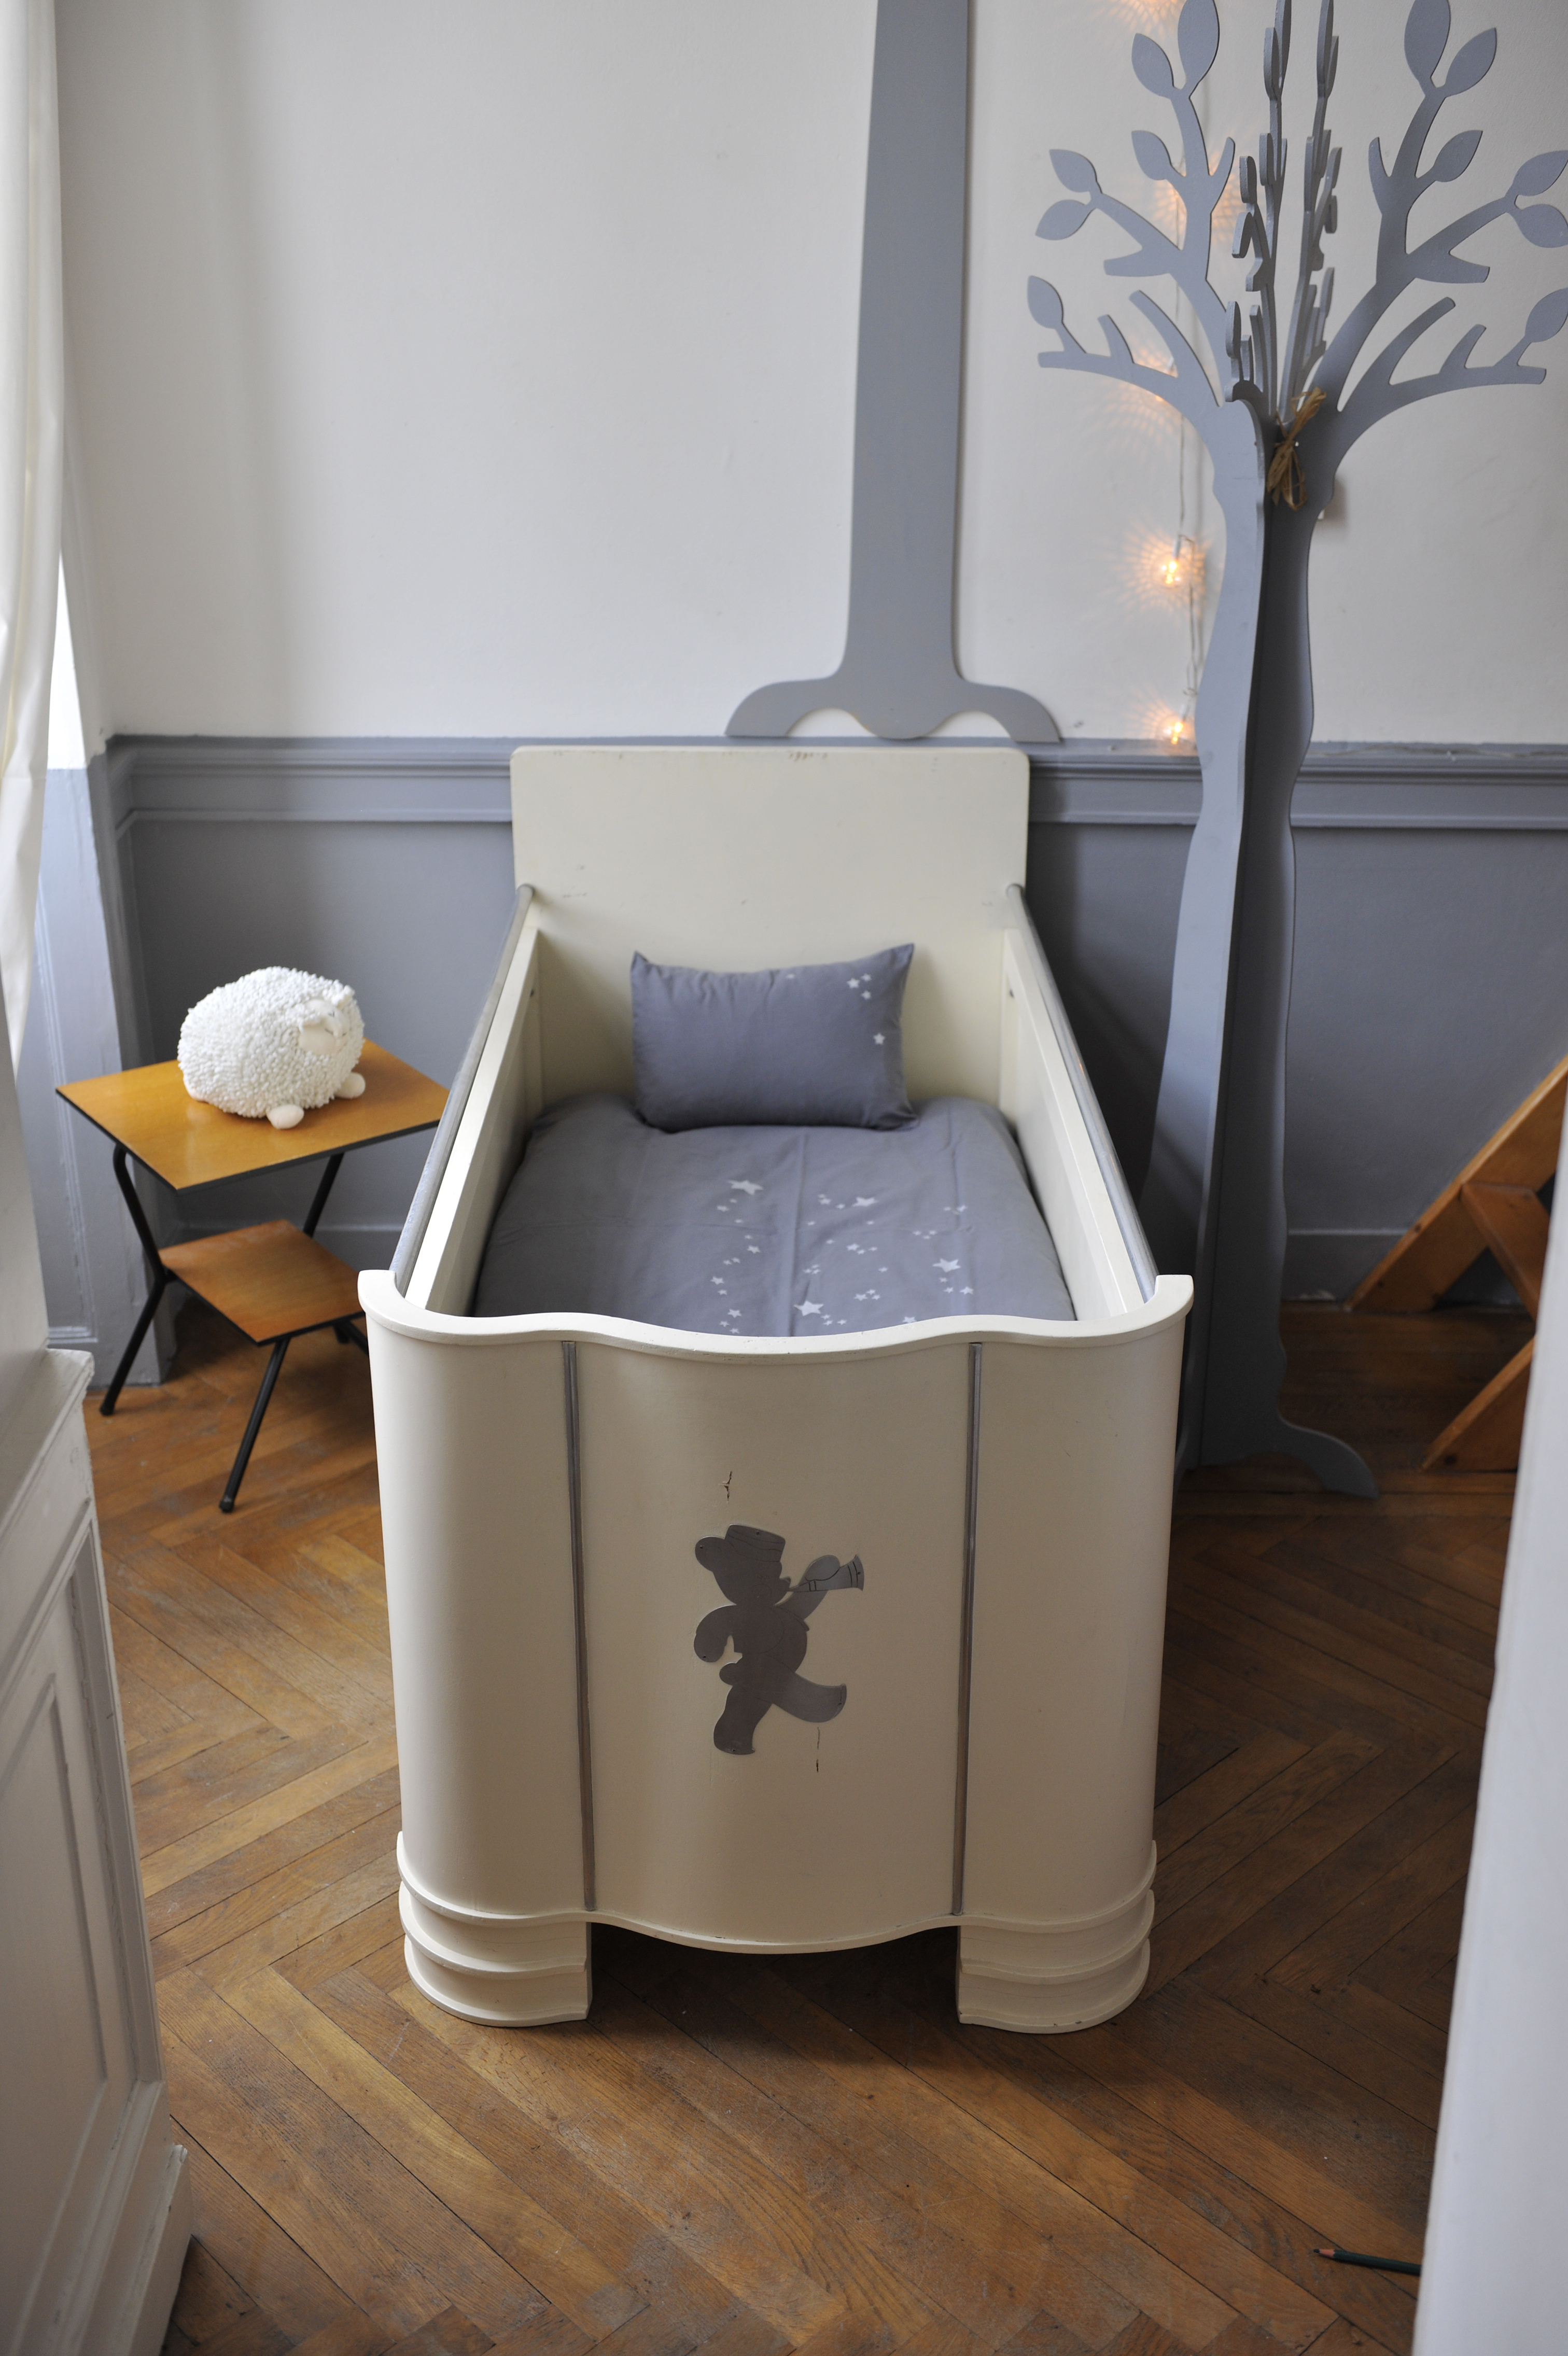 lit b b ourson ann e 40 2 l 39 atelier de niguedouille. Black Bedroom Furniture Sets. Home Design Ideas